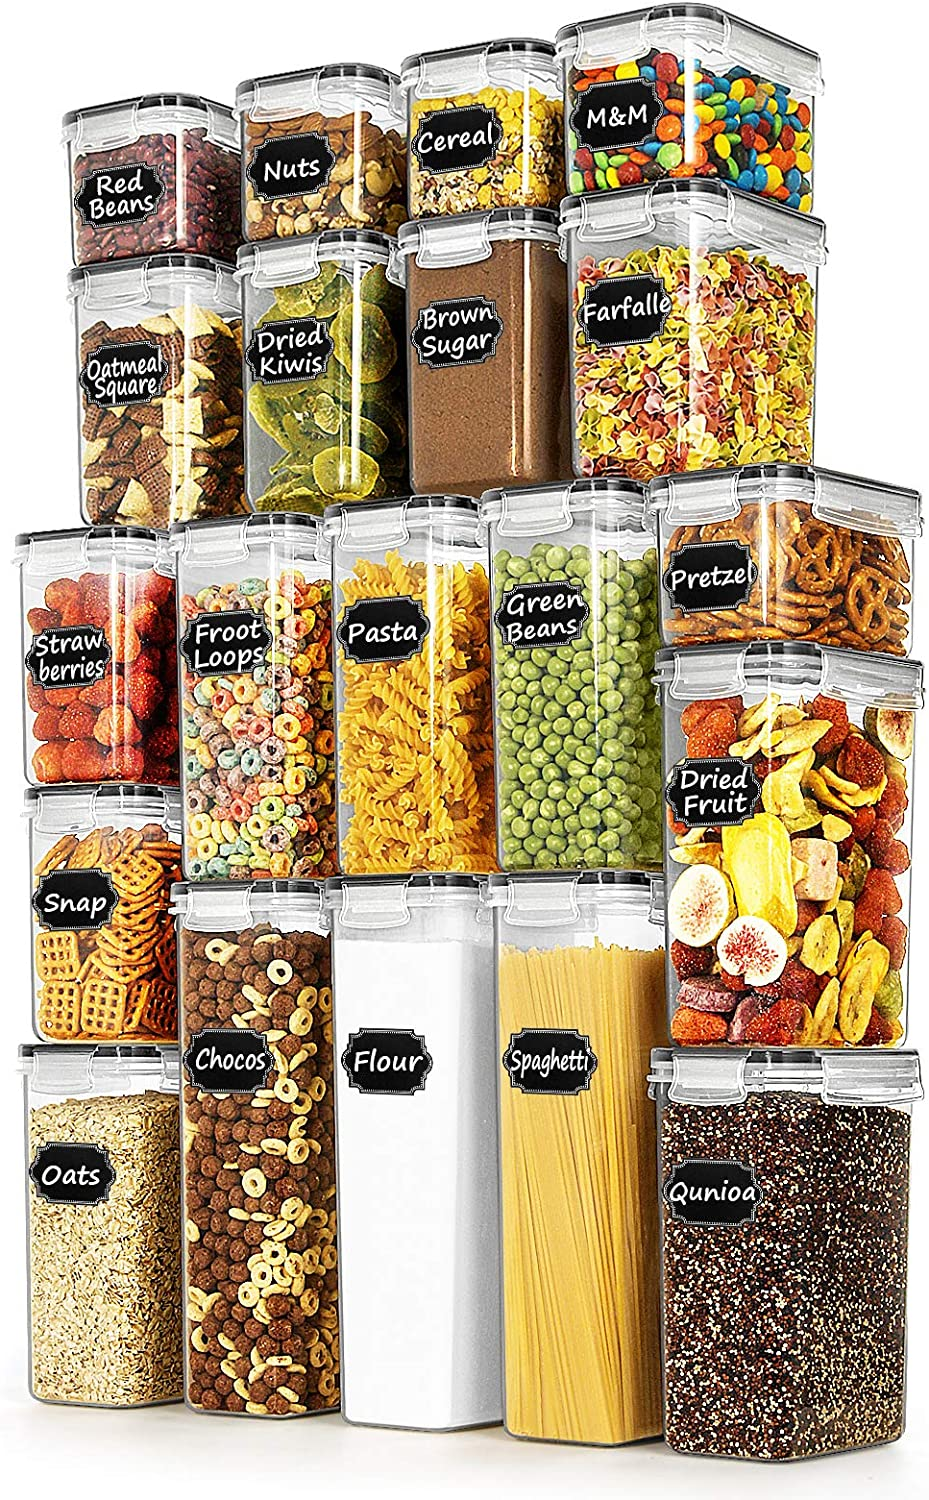 Airtight Food Storage Containers - Paincco Cereal Storage Containers Set of 20 for Sugar, Flour and Baking Supplies, Leak Proof & BPA Free Kitchen Pantry Organization